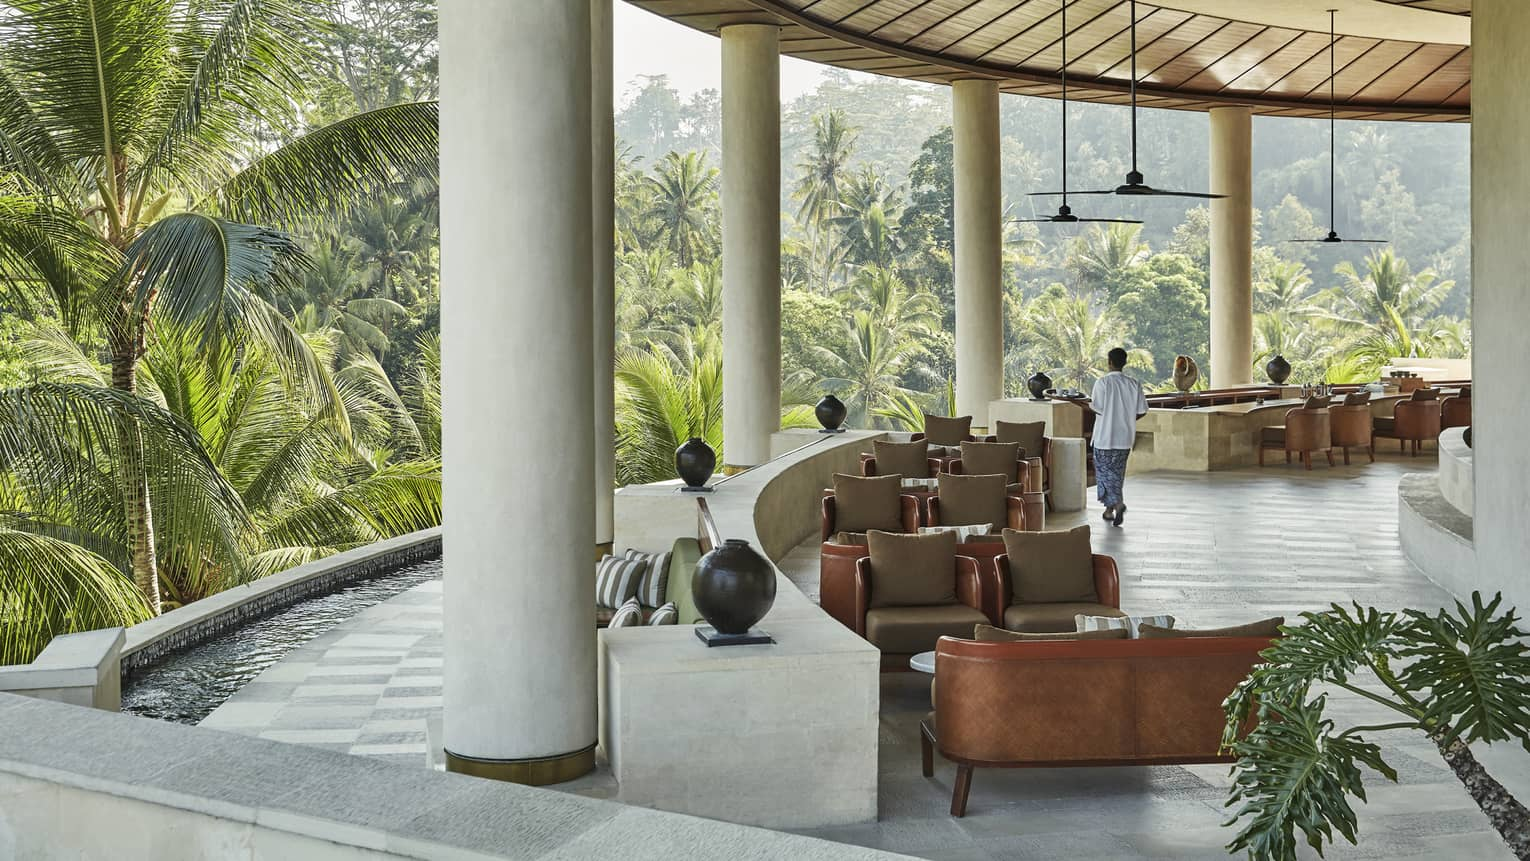 The lobby of the Four Seasons hotel in Bali, overlooking a vast forest